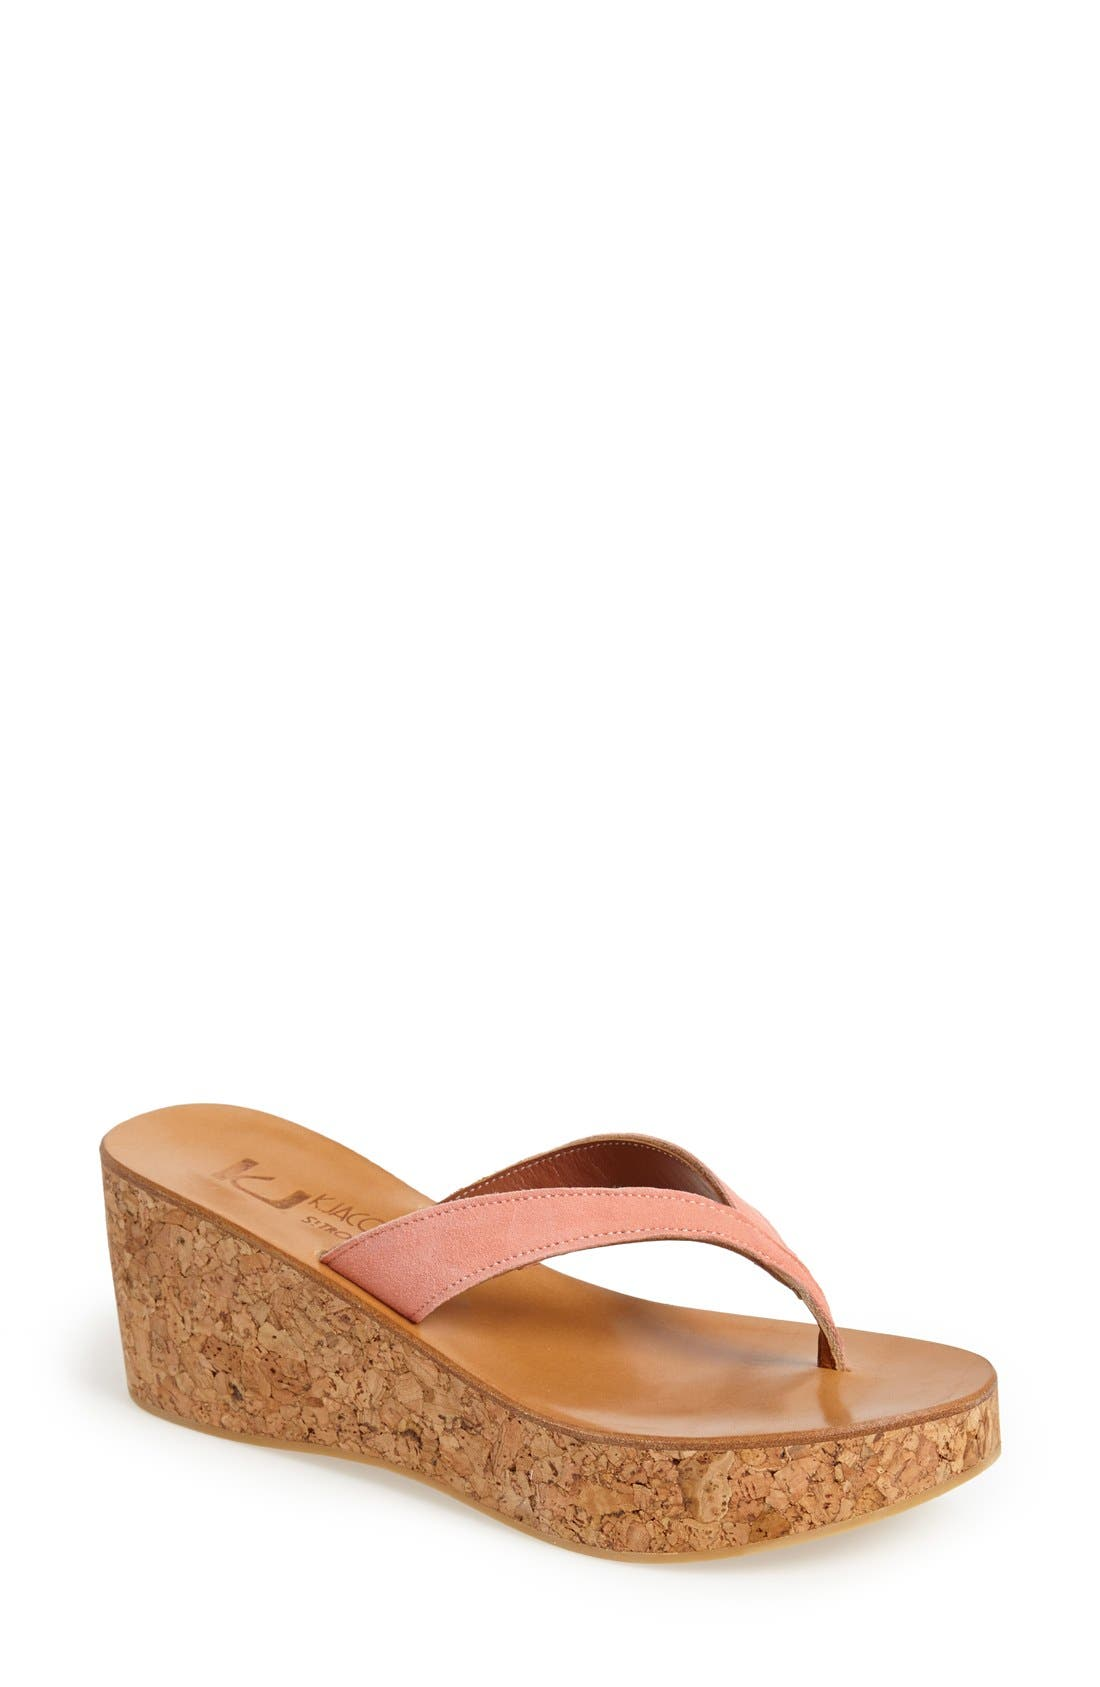 Main Image - K.Jacques St. Tropez 'Diorite' Wedge Sandal (Women)